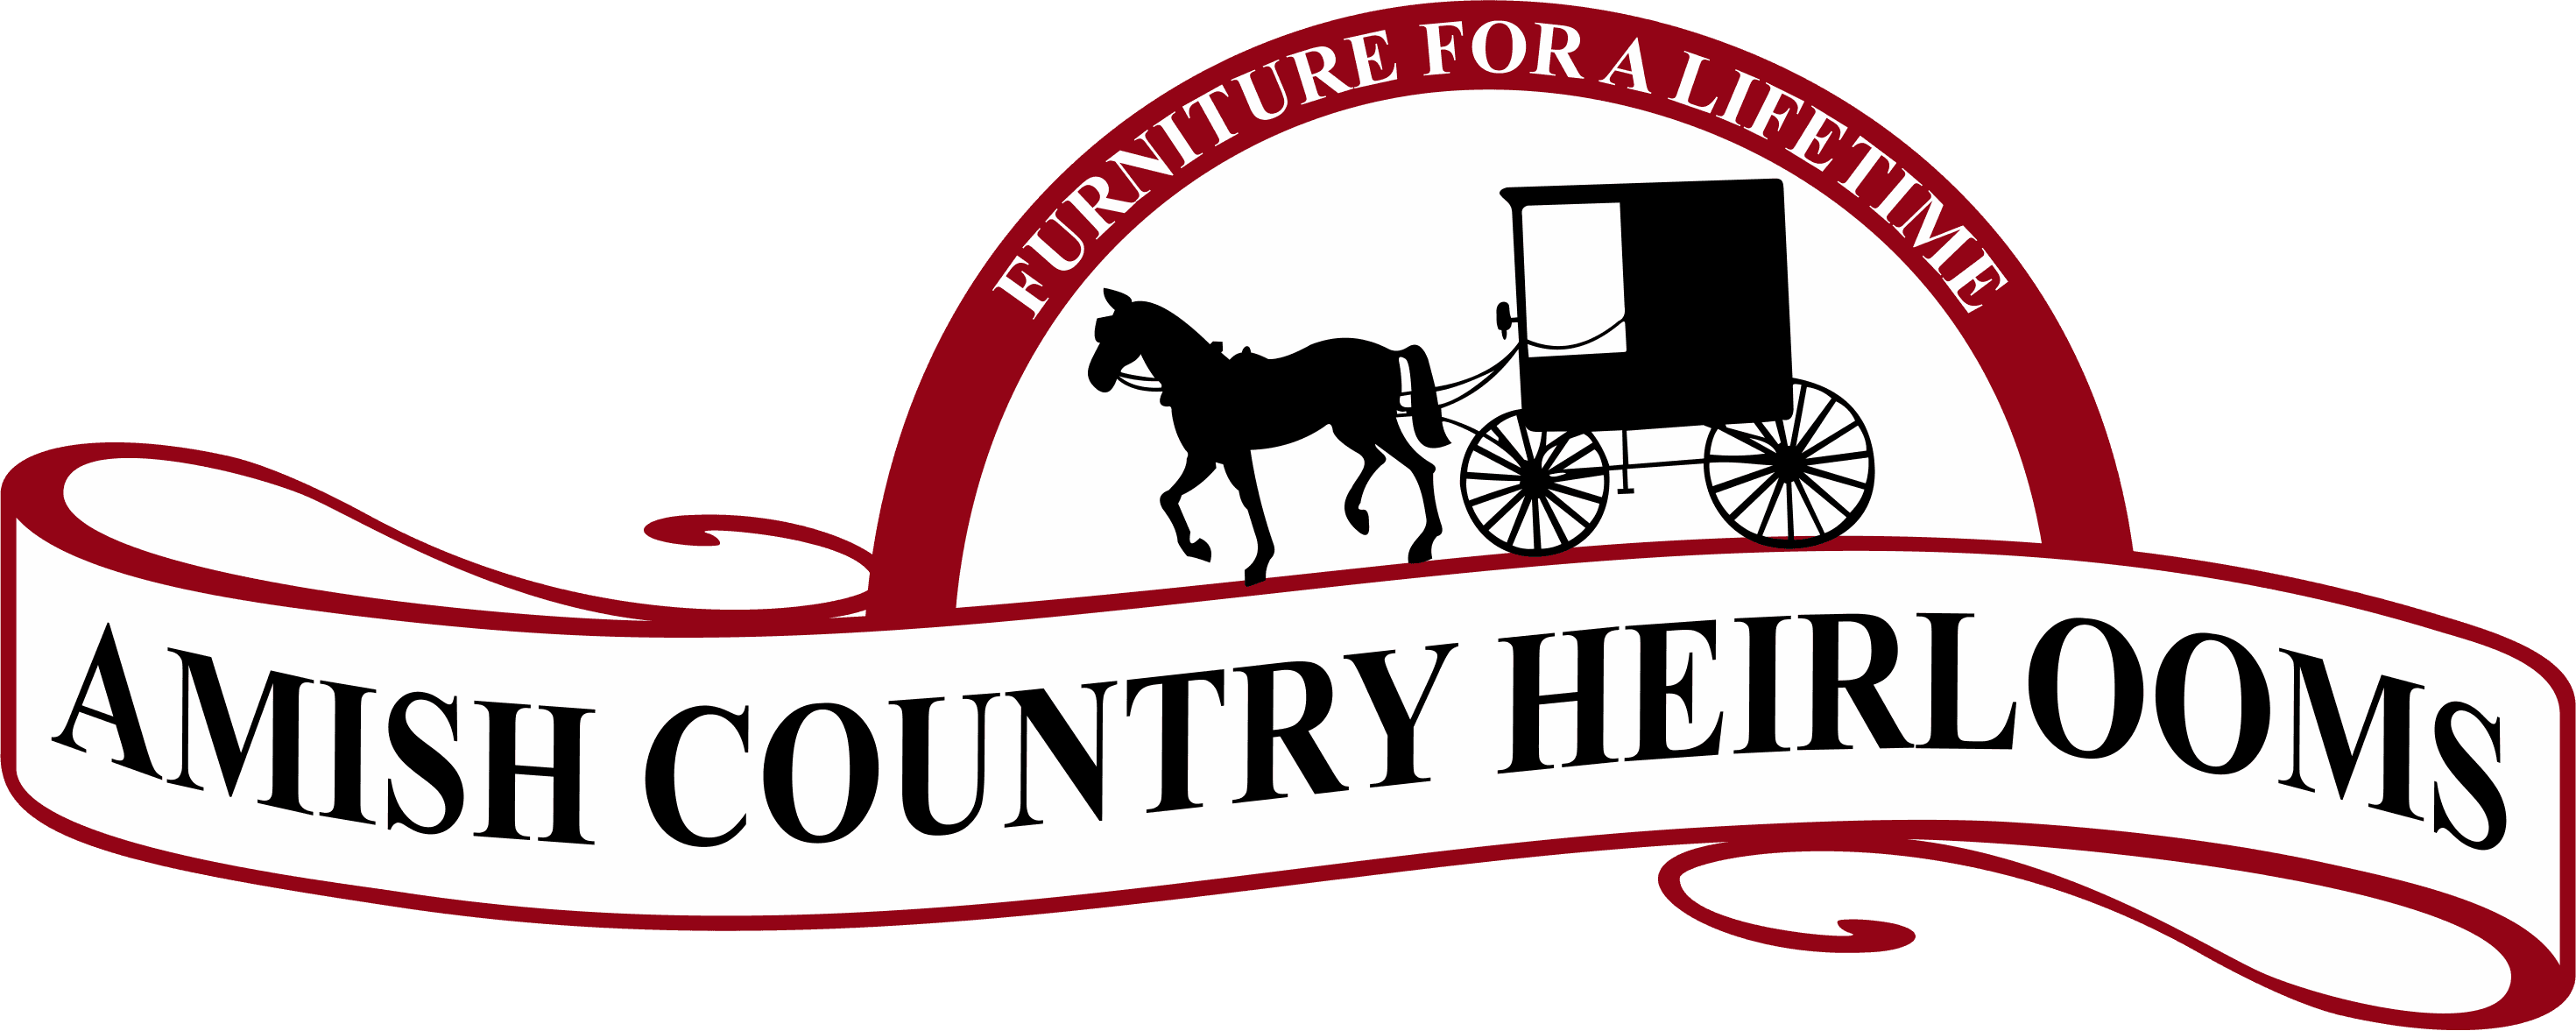 Amish Country Heirlooms - Logo